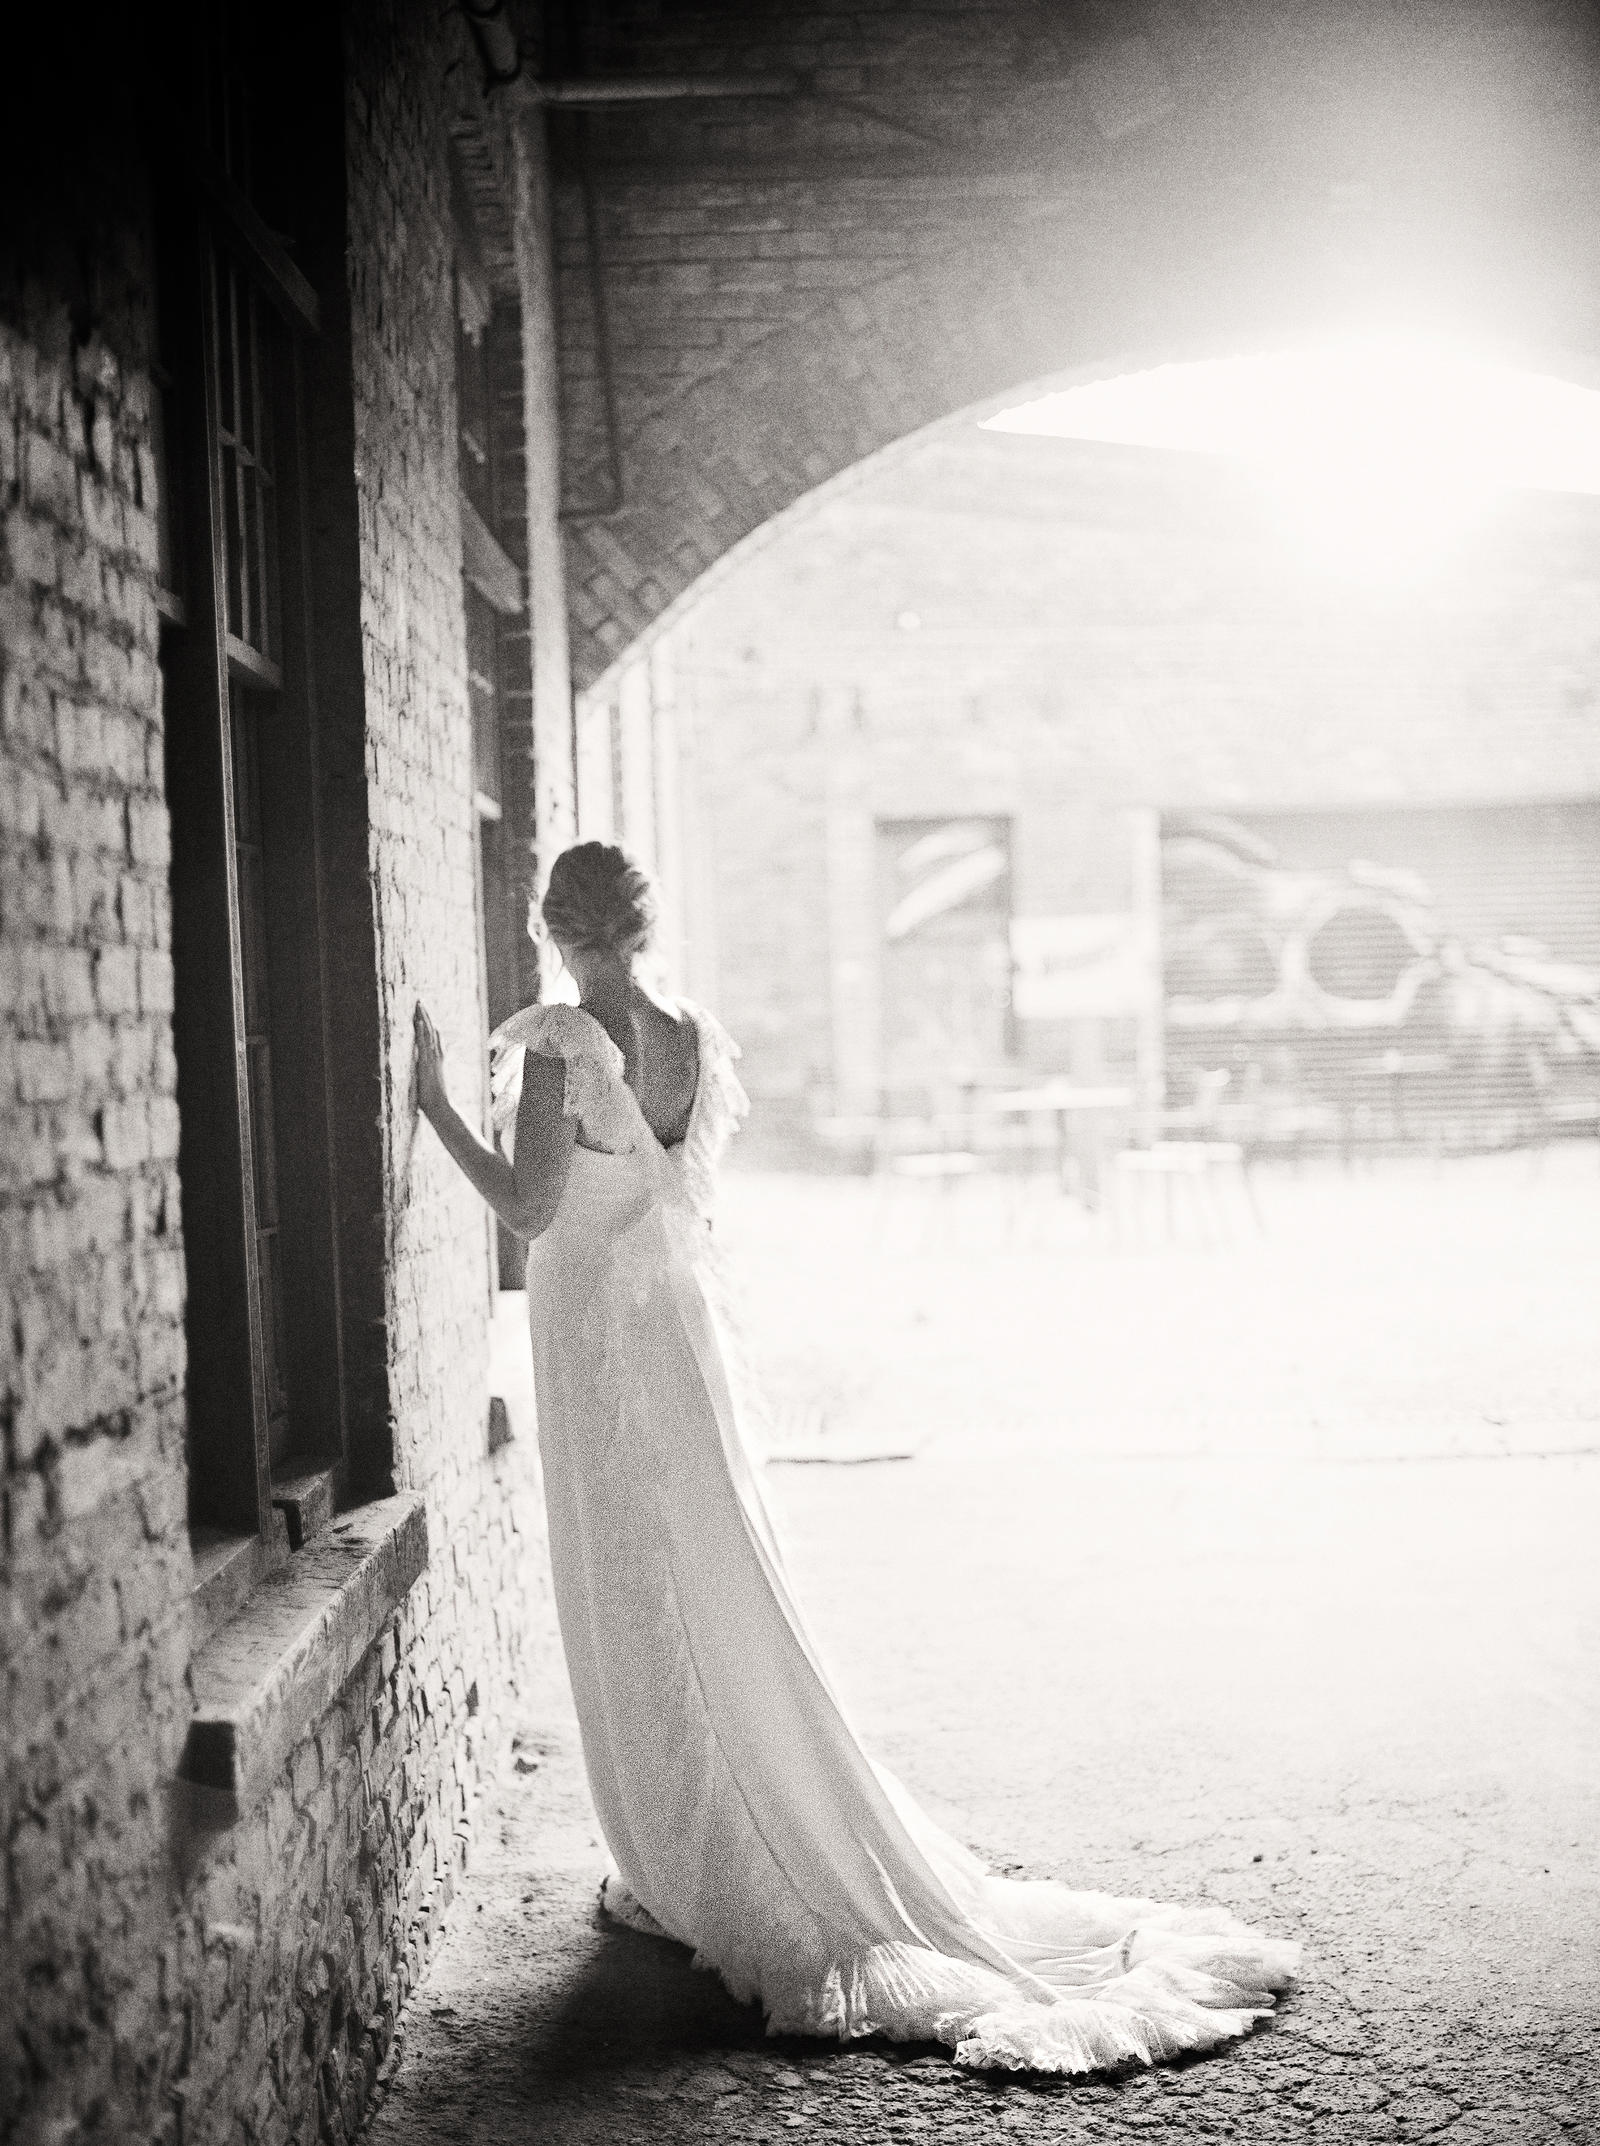 Wedding Photography | A bride looks out at a terrace, with her hand on a wall.